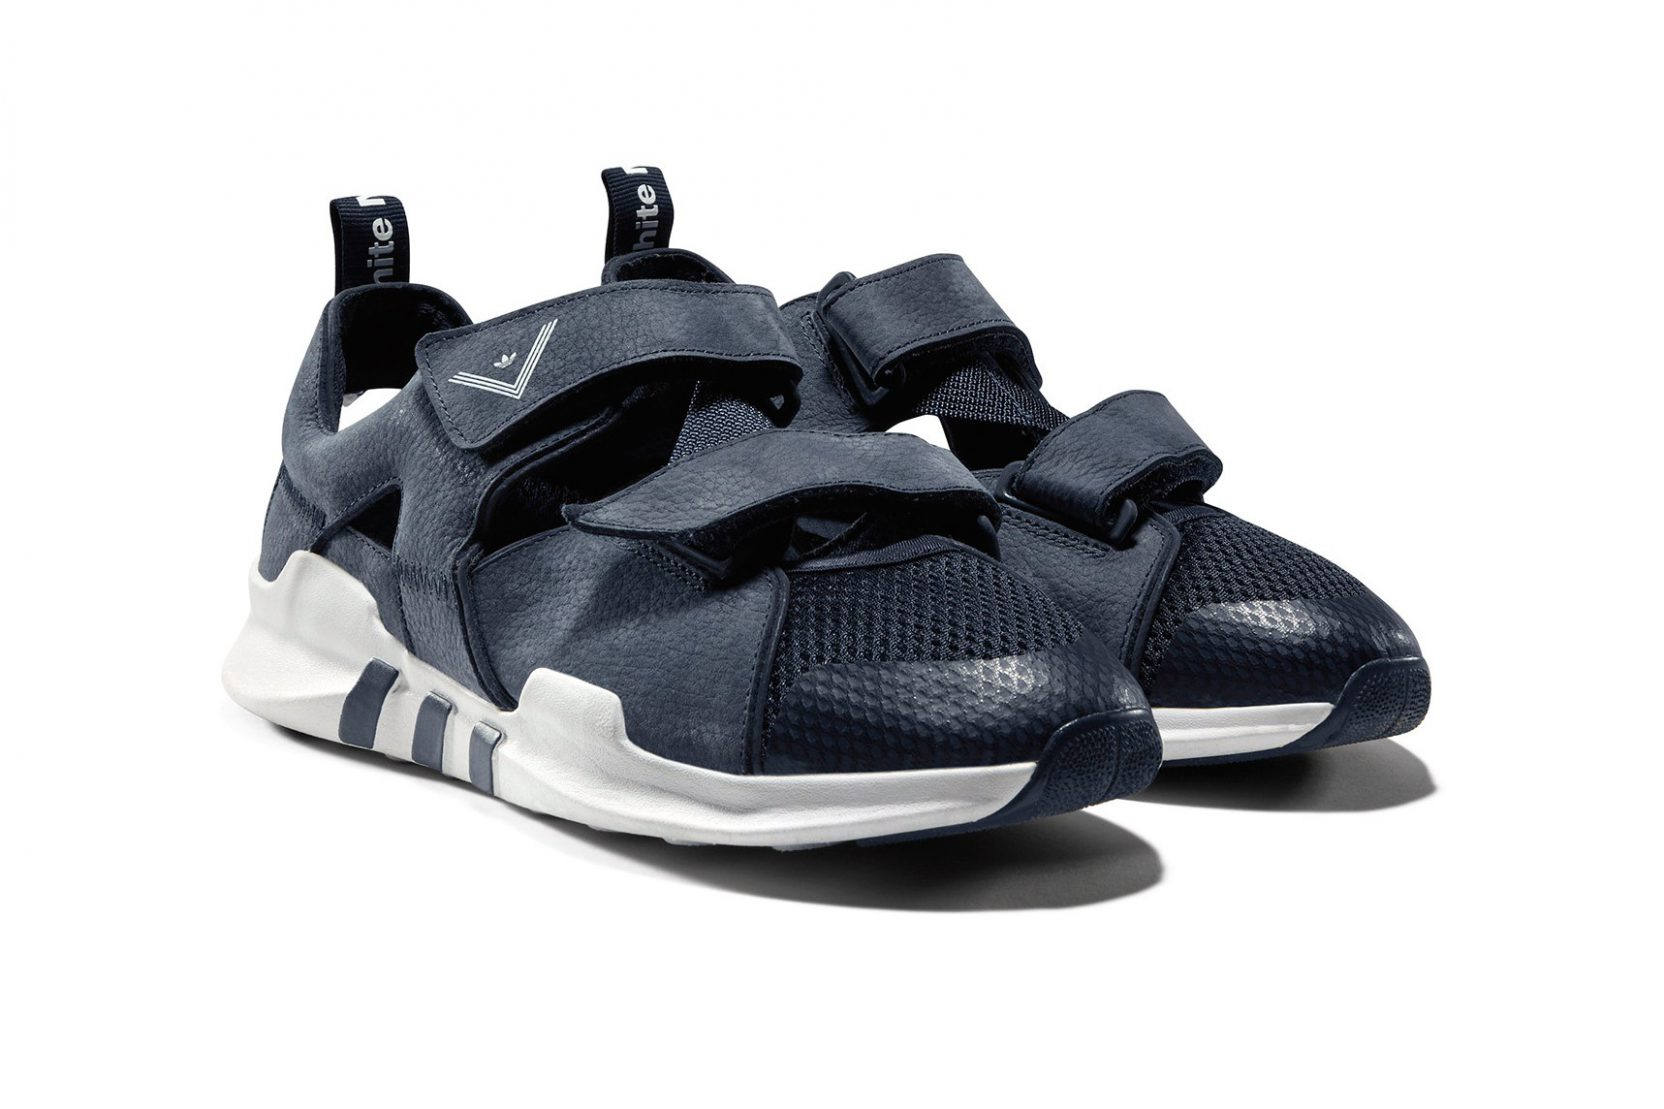 White Mountaineering x Adidas Spring Collection 9